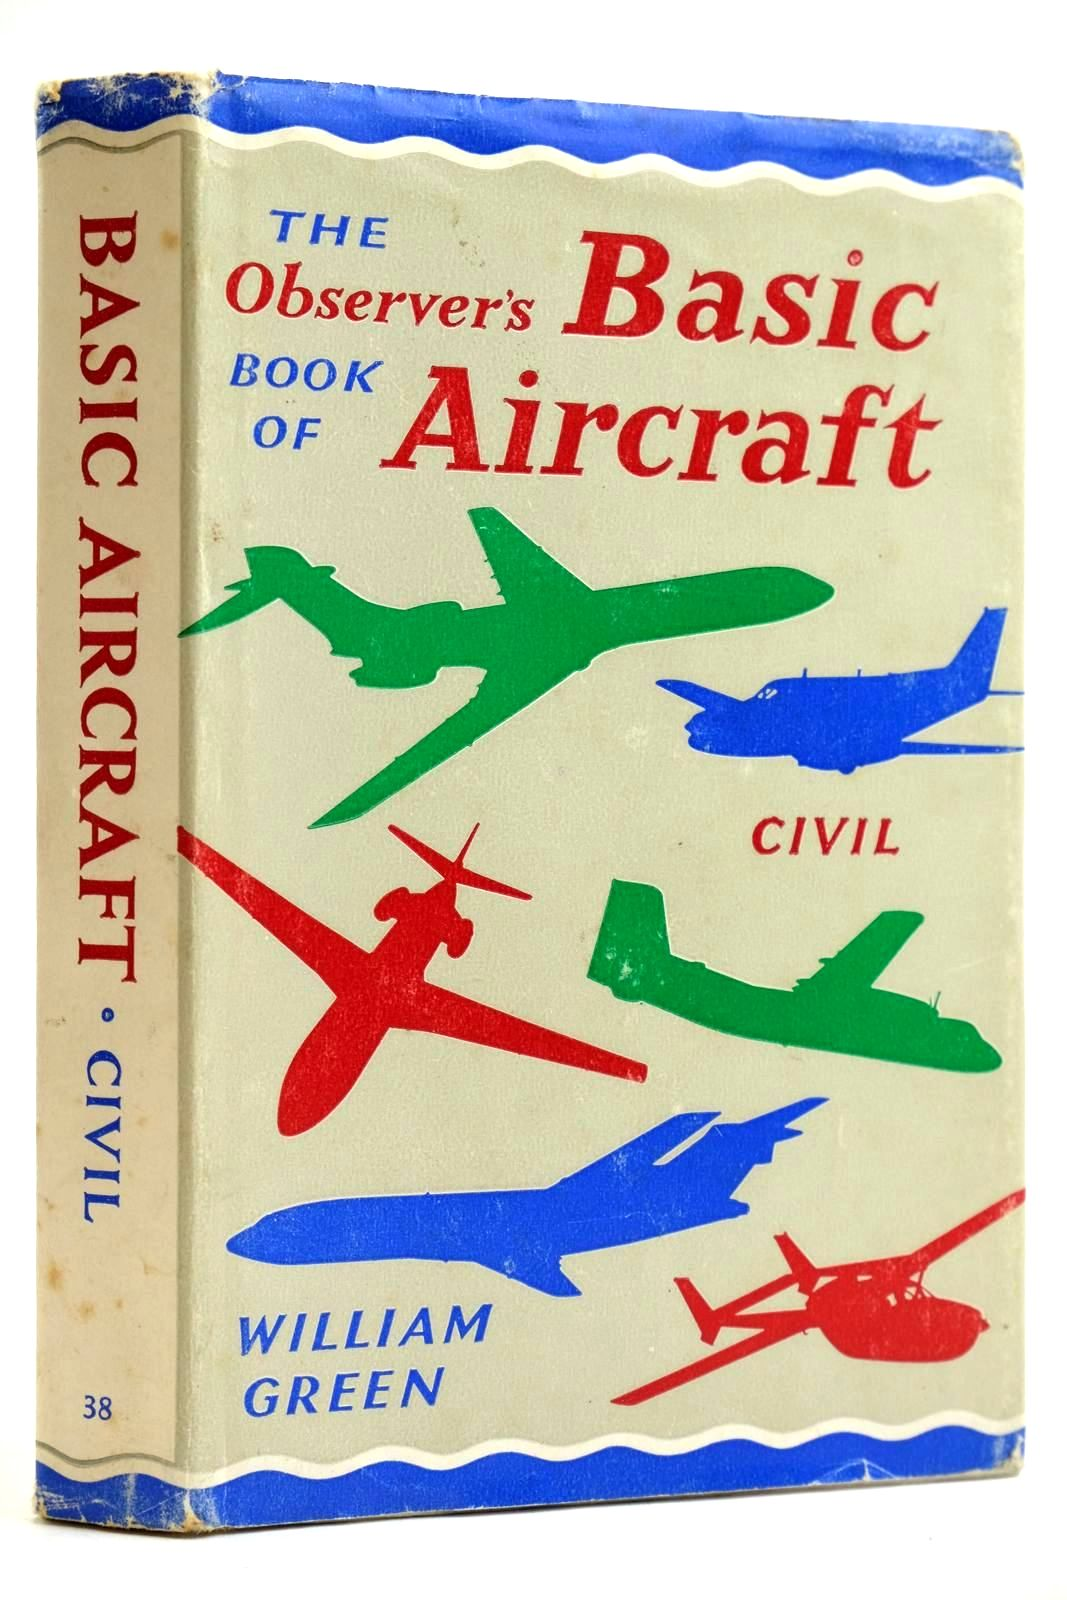 Photo of THE OBSERVER'S BOOK OF BASIC AIRCRAFT: CIVIL- Stock Number: 2132053